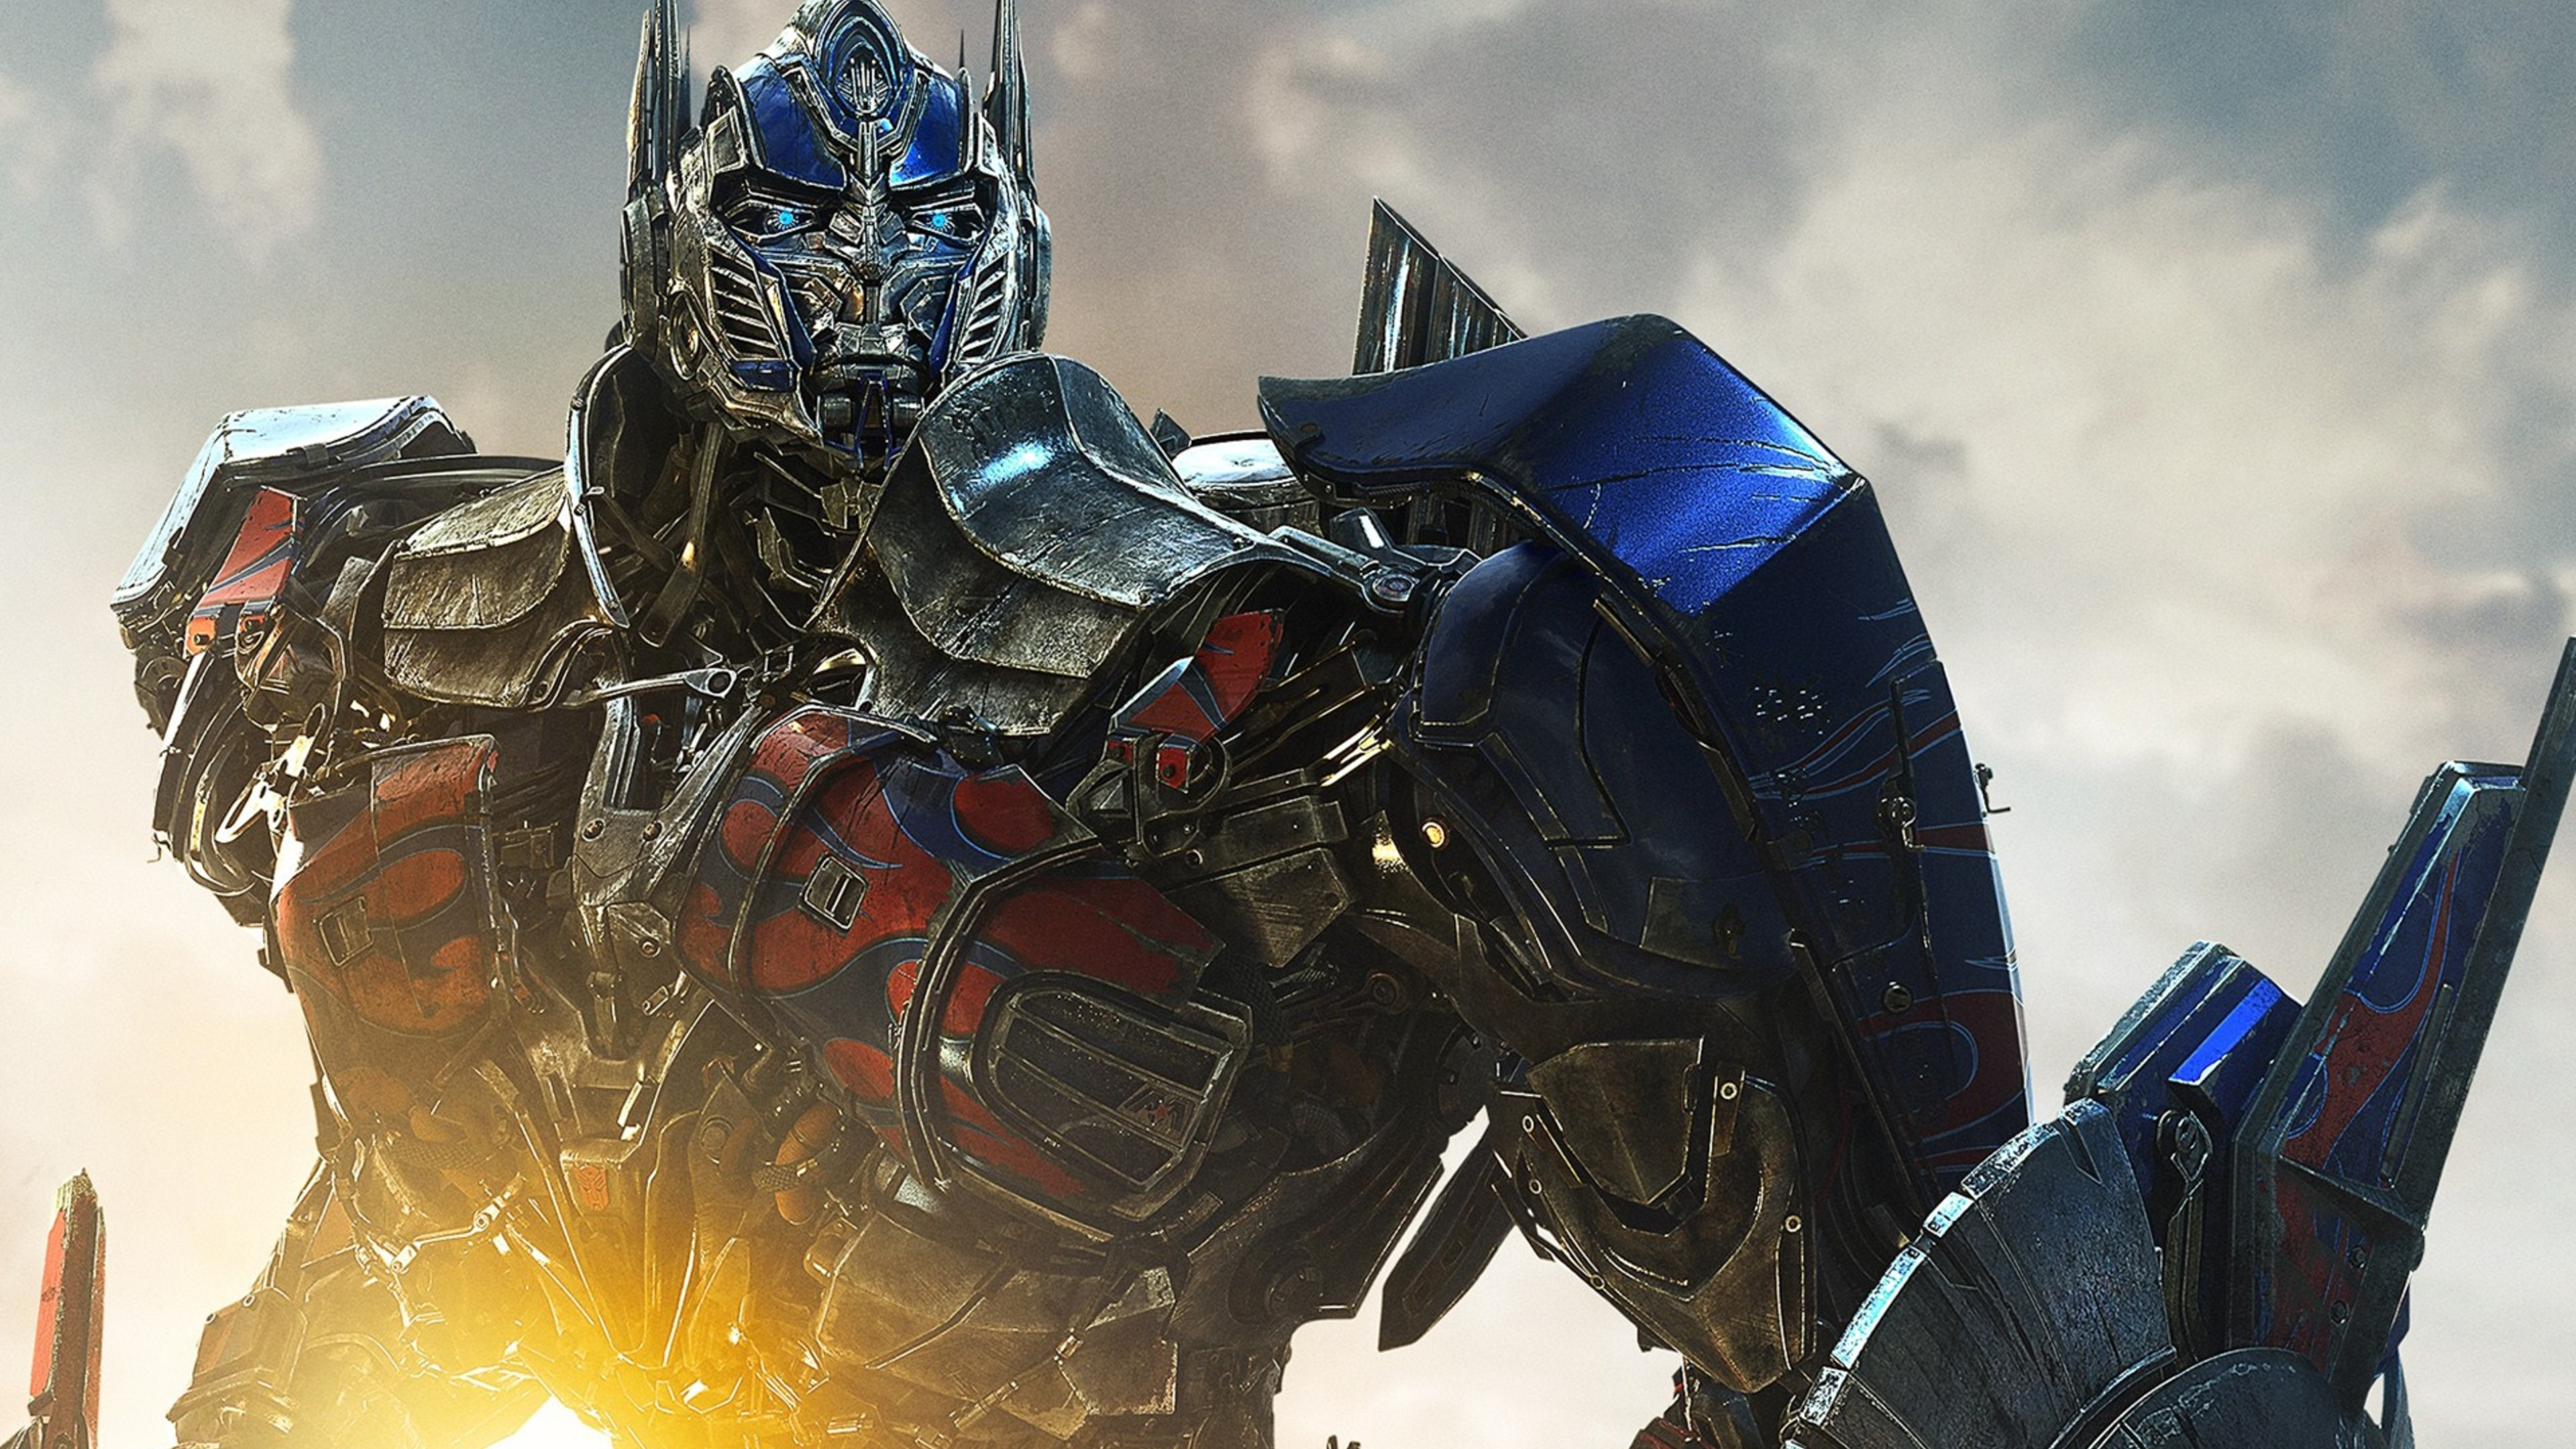 transformers age of extinction optimus prime, hd movies, 4k